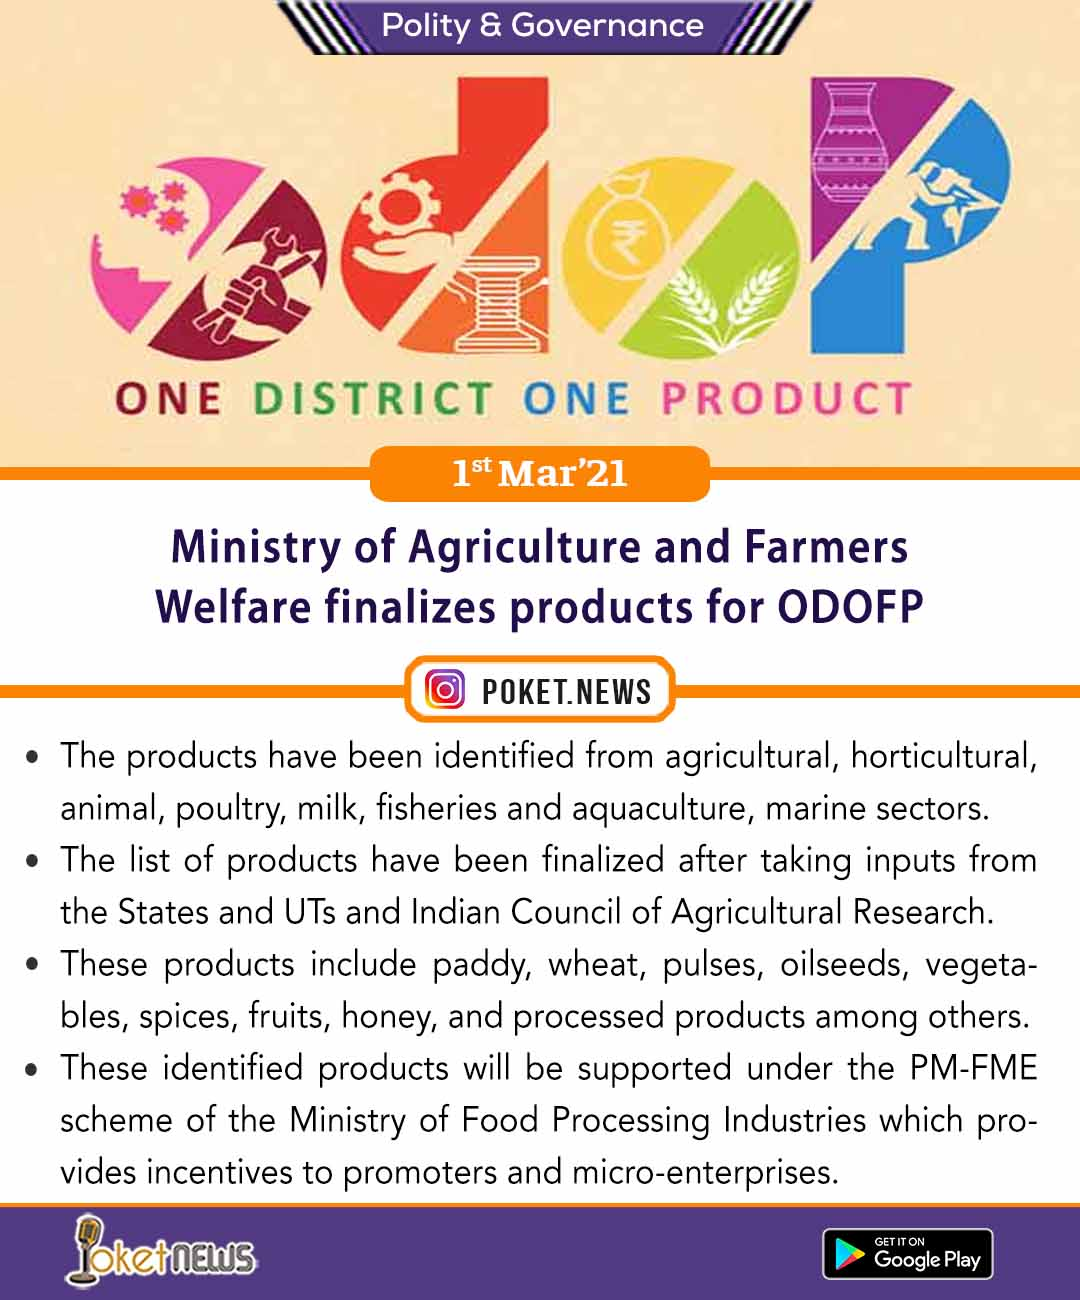 Ministry of Agriculture and Farmers Welfare finalizes products for ODOFP